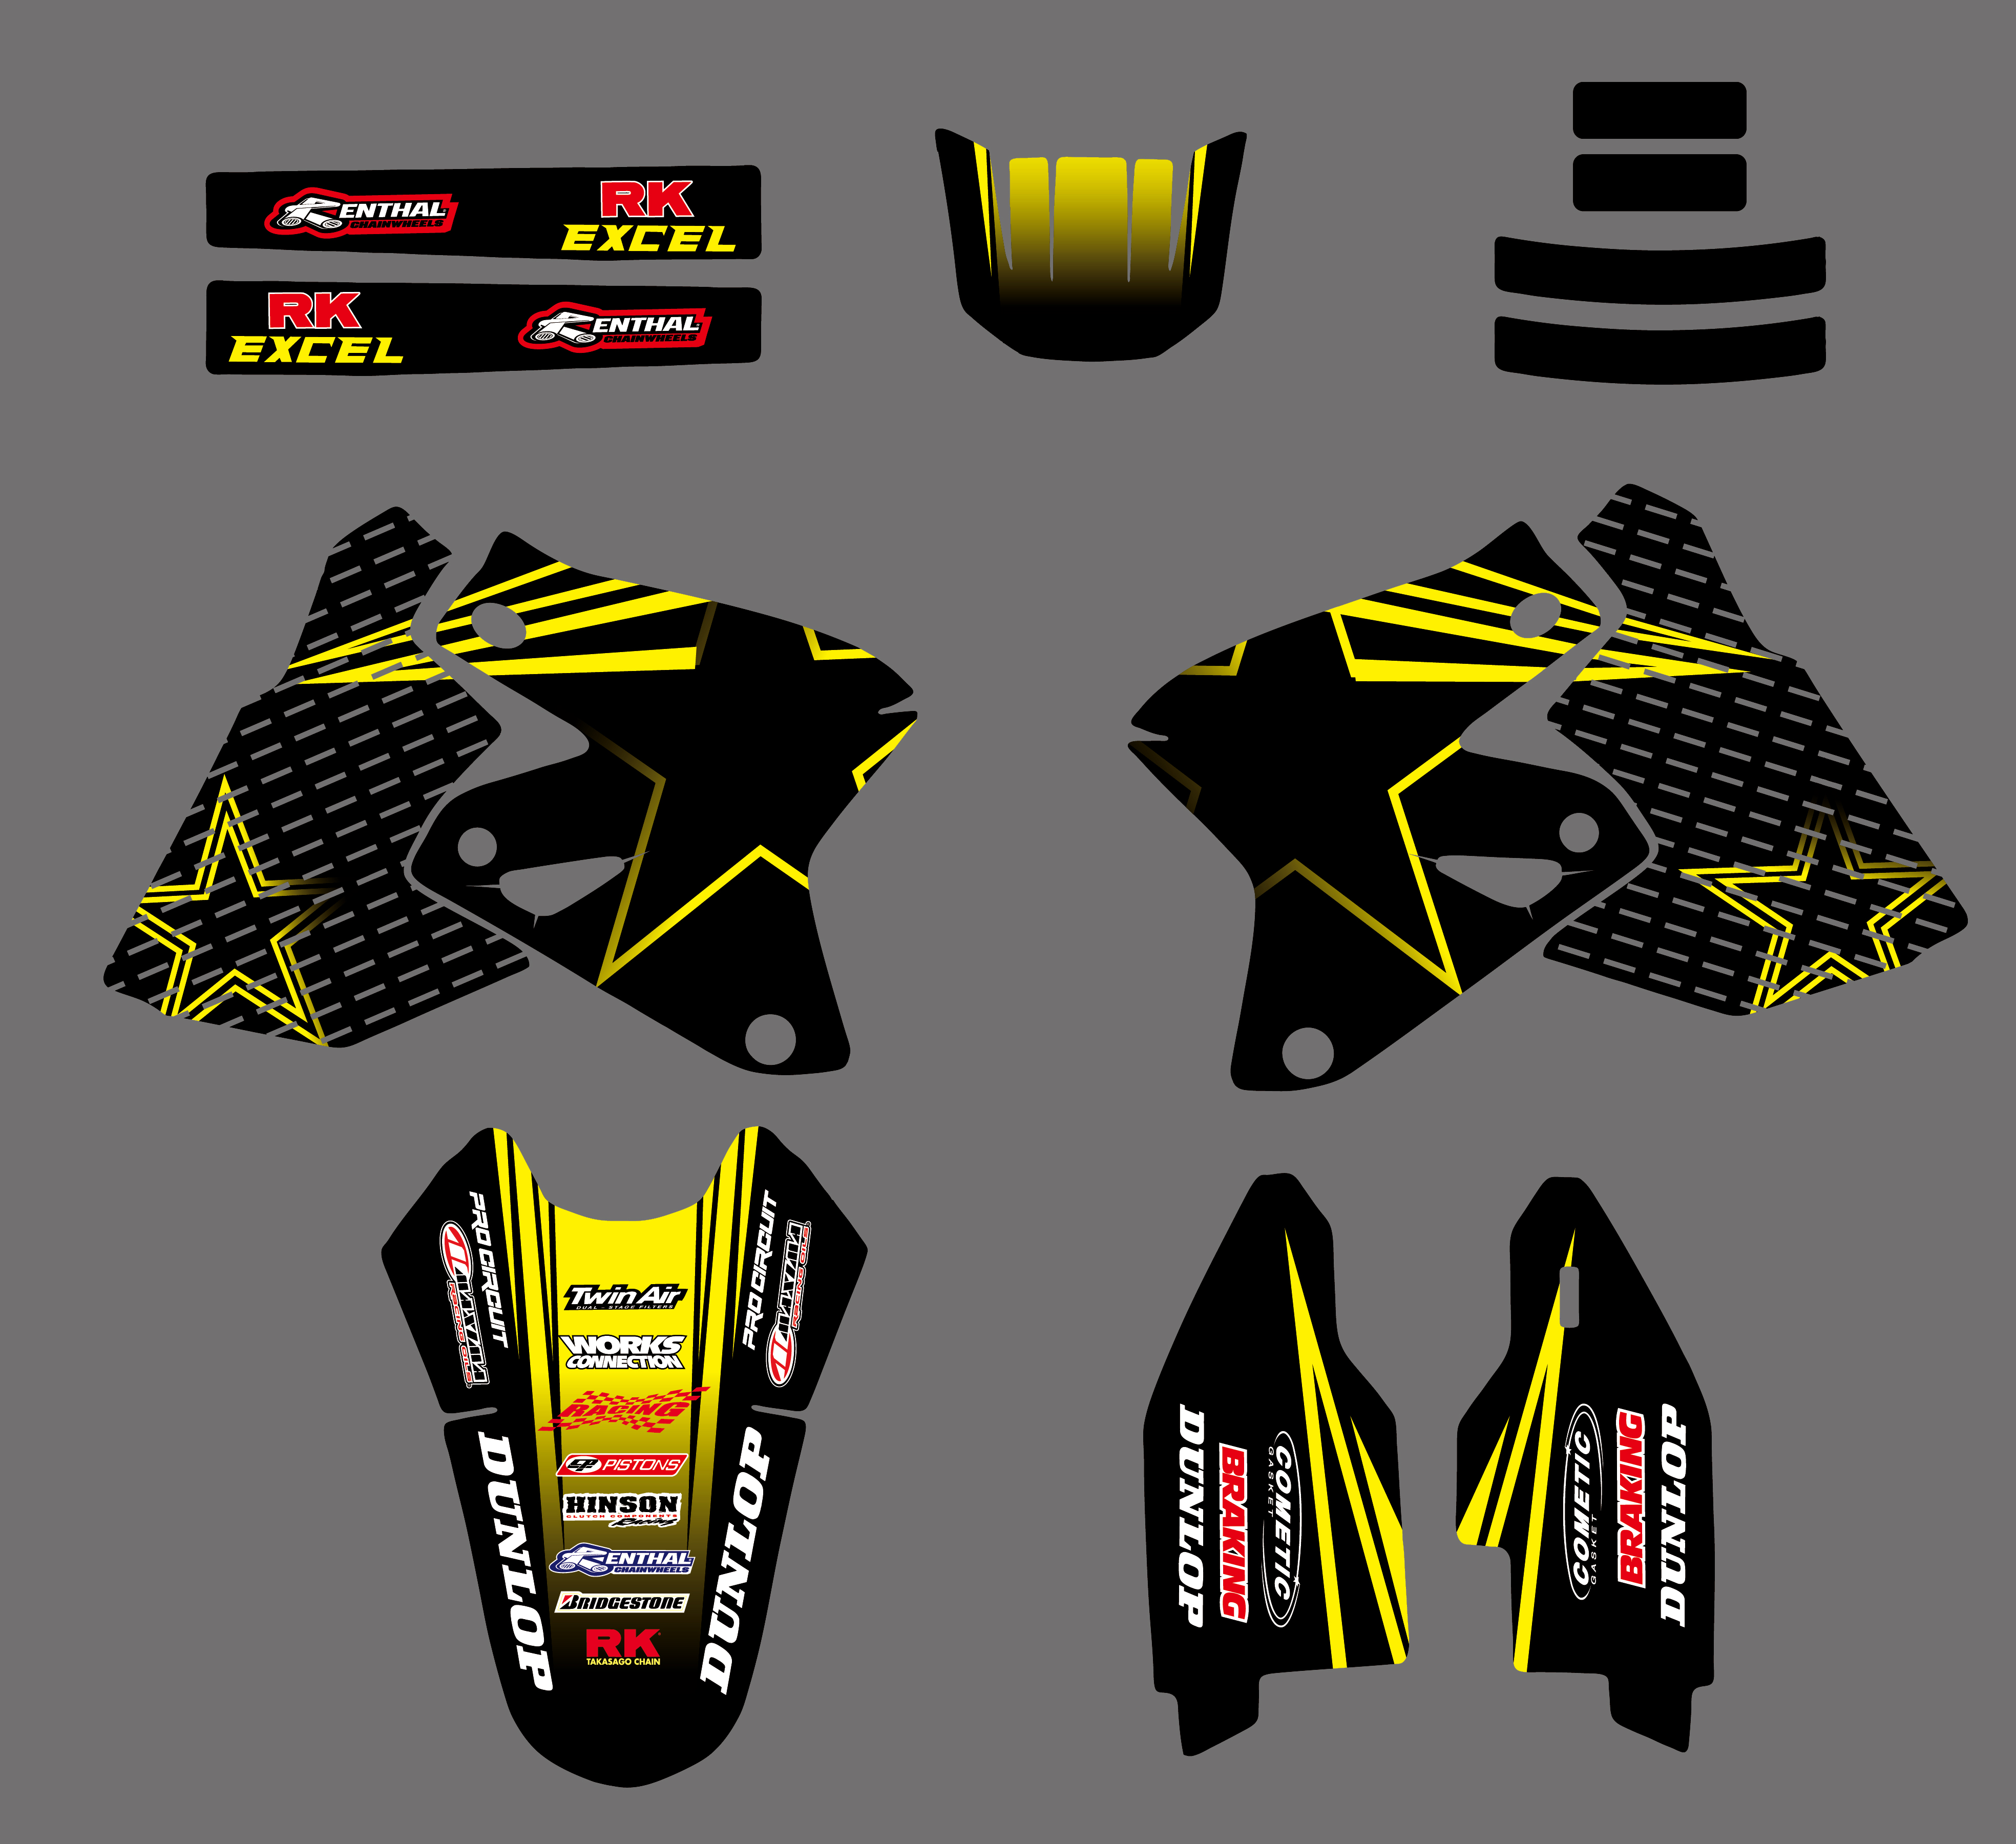 0026 Star New Style TEAM GRAPHICS DECALS <font><b>Stickers</b></font> For <font><b>Suzuki</b></font> DRZ400 KLX400 DRZ KLX 400 All Year <font><b>Sticker</b></font> Motorcycle Background image